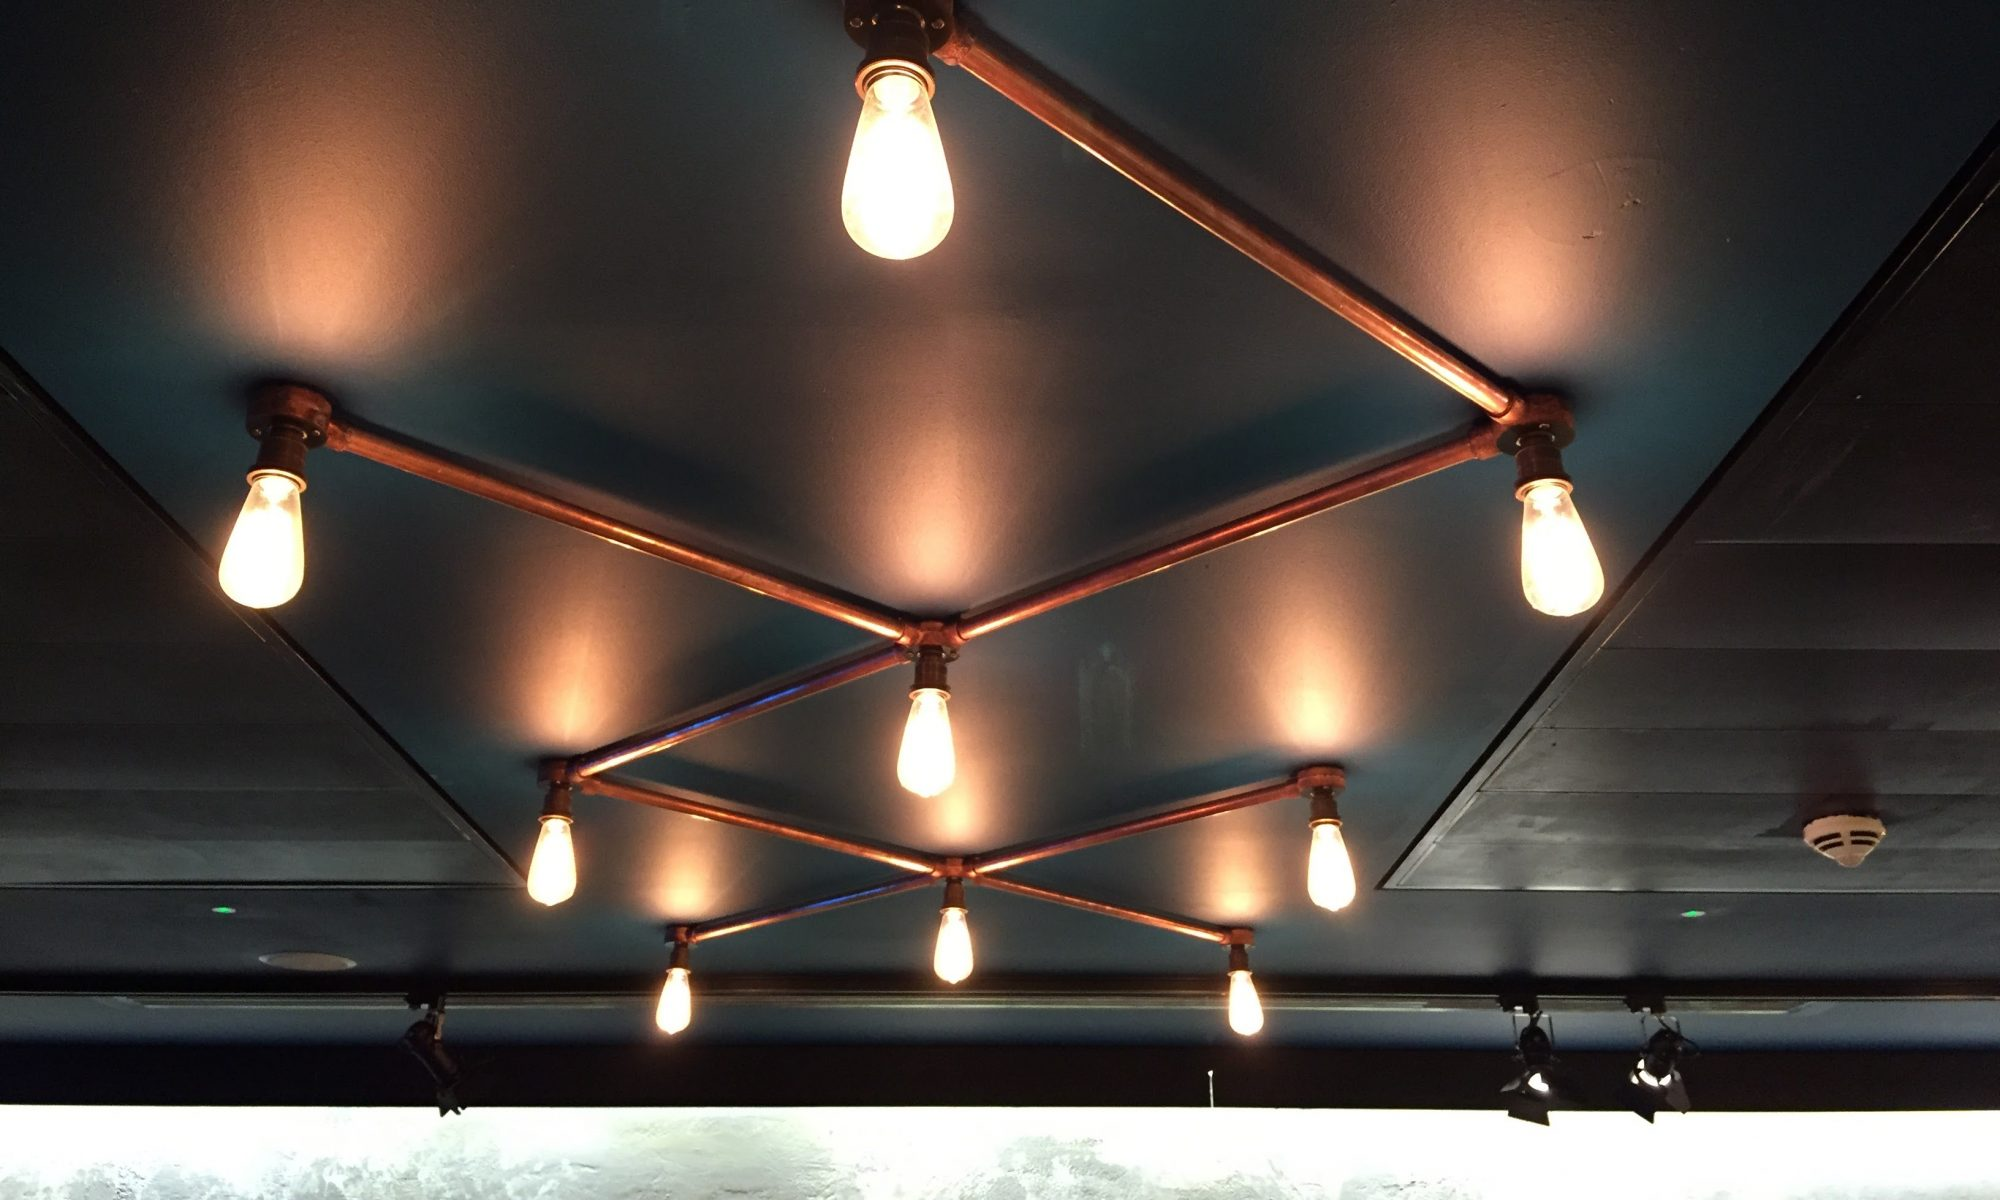 Conduit lighting